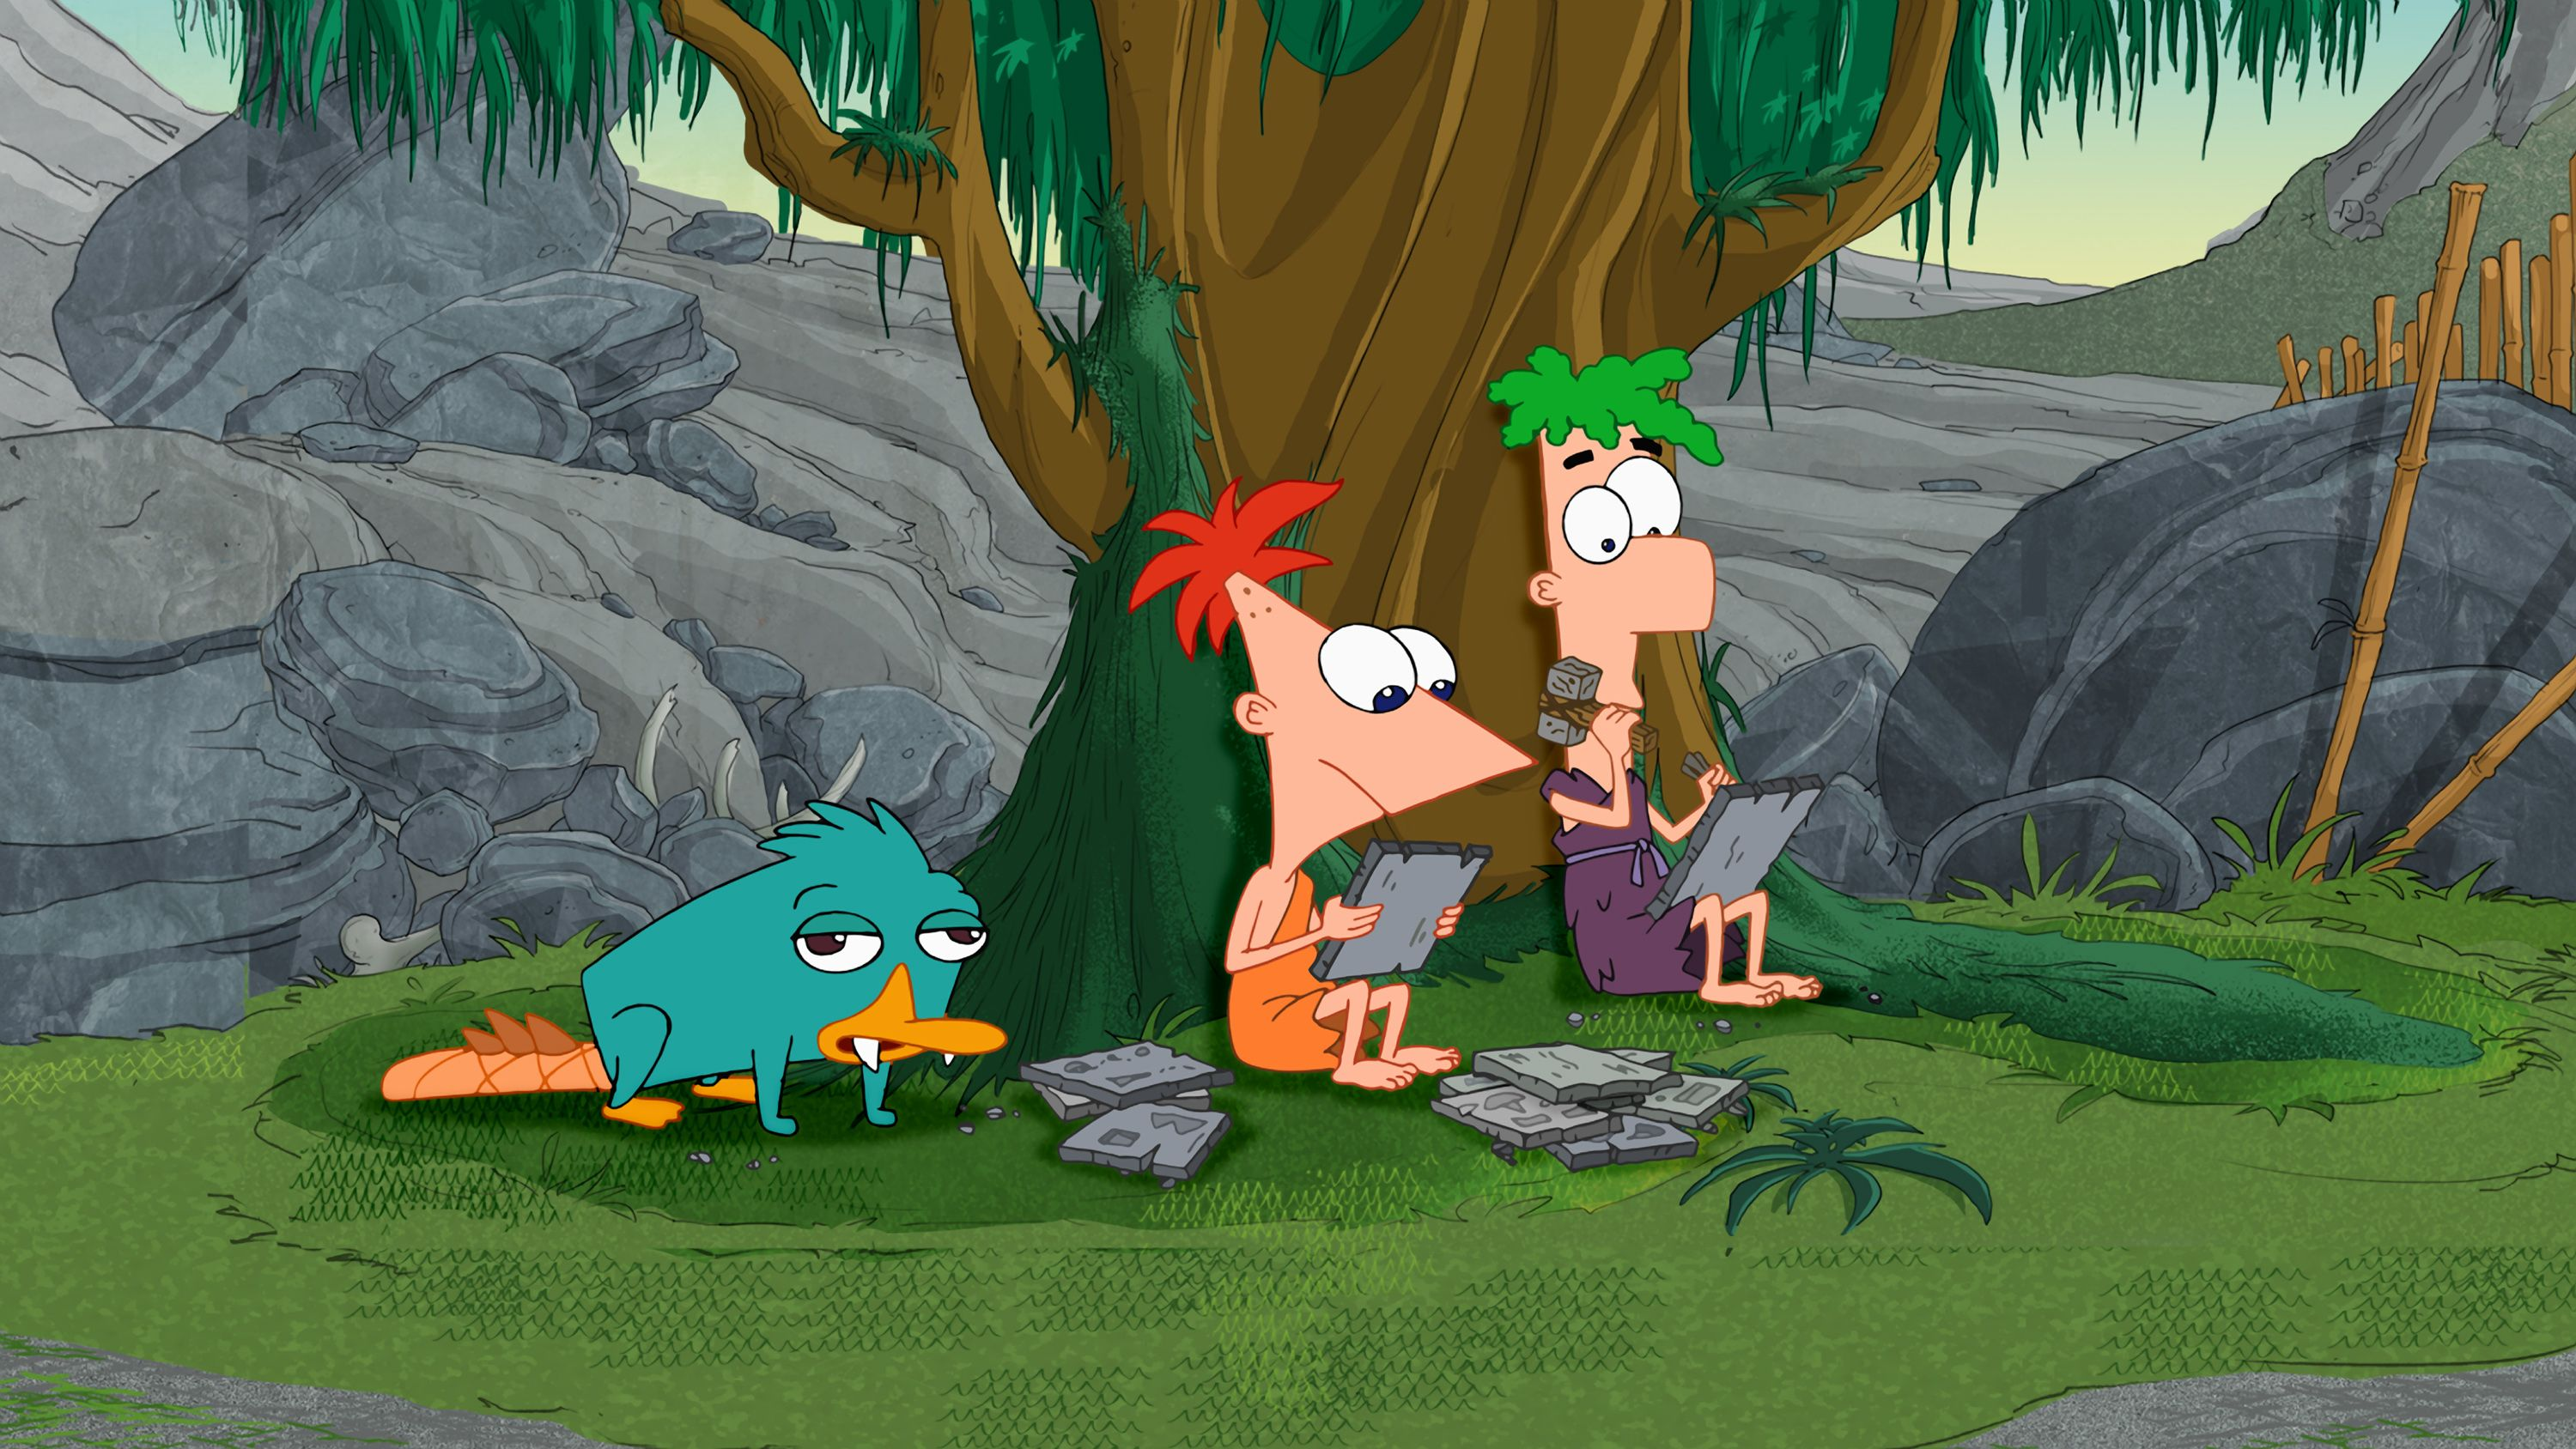 Dr Doofenshmirtz S Complete Backstory Phineas Ferb Explained Phineas And Ferb Memes Phineas And Ferb Disney Memes